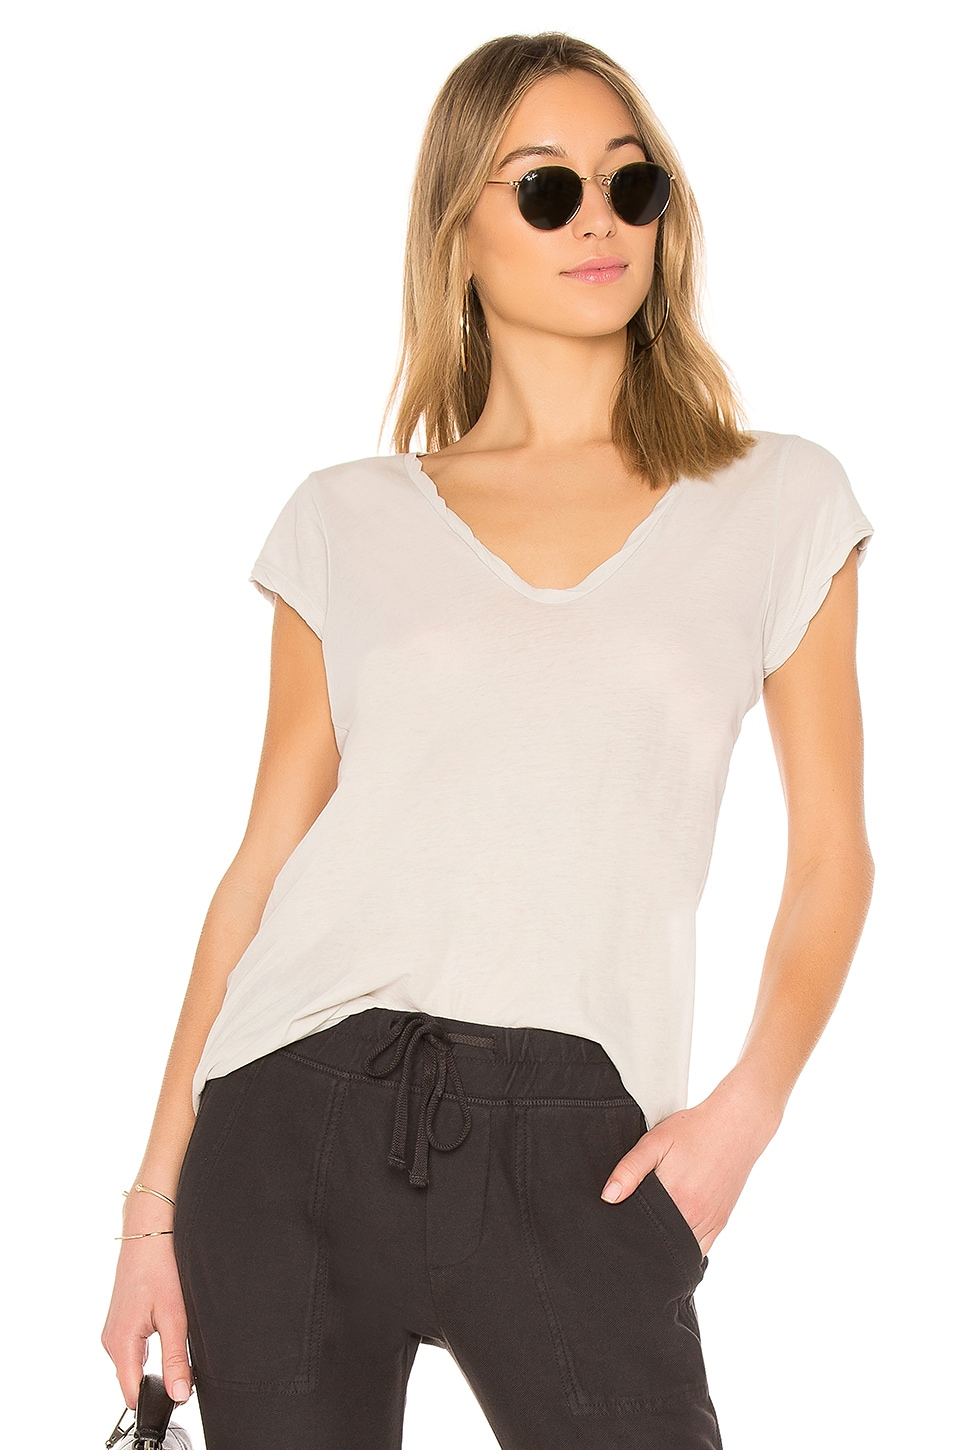 James Perse High Gauge Deep V Tee in Silver